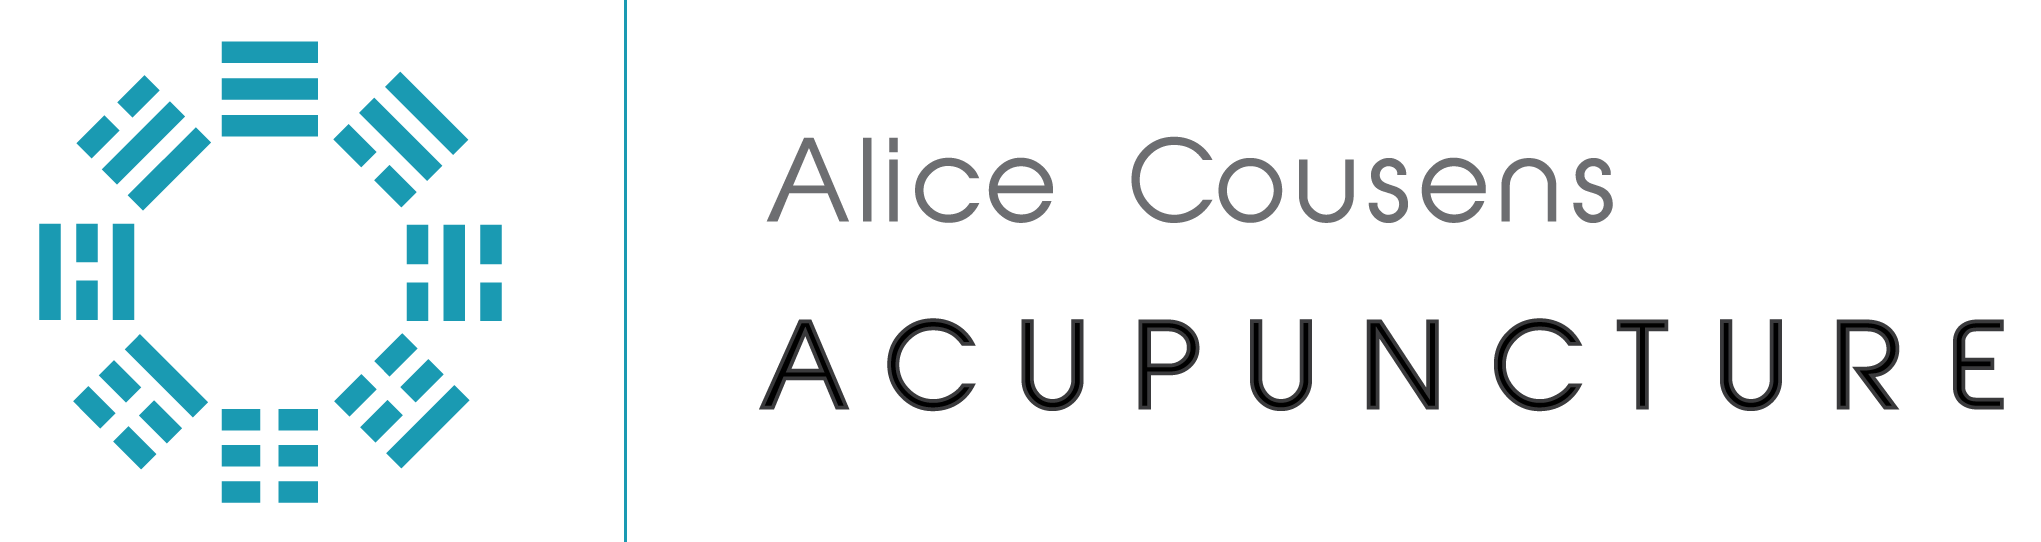 Alice Cousens Acupuncture